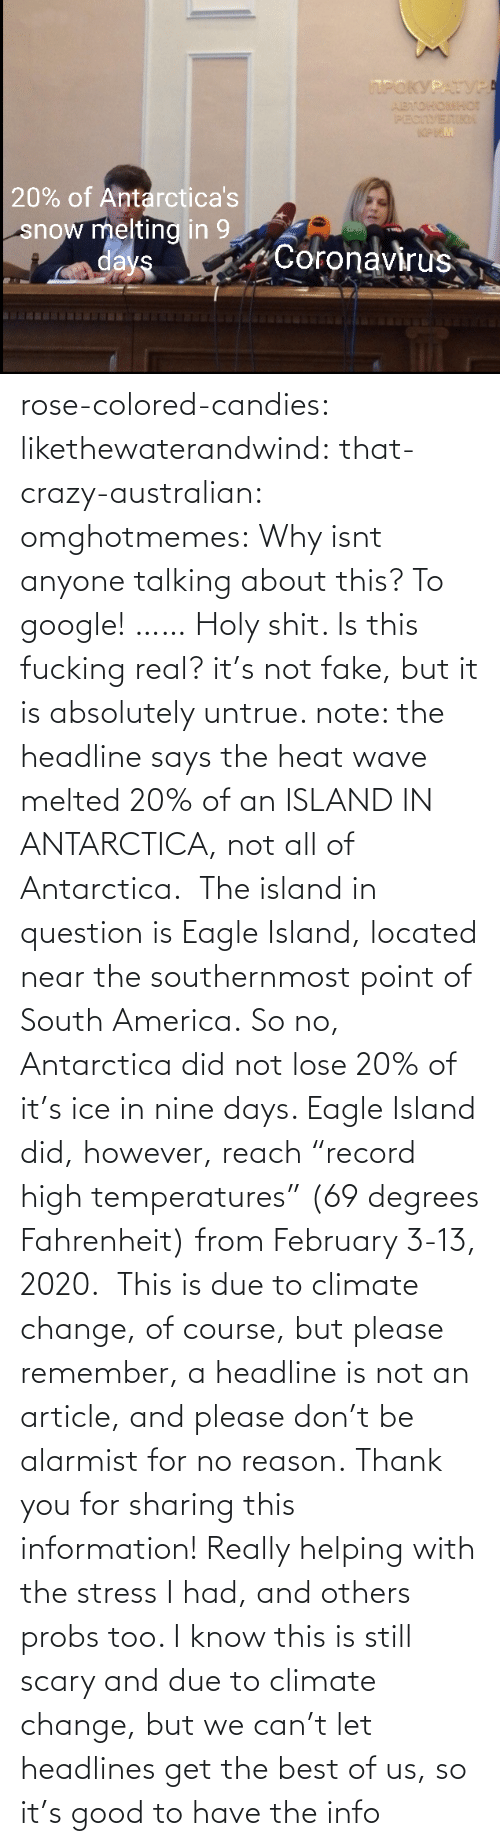 "Change: rose-colored-candies: likethewaterandwind:   that-crazy-australian:  omghotmemes:  Why isnt anyone talking about this?   To google!  ……   Holy shit. Is this fucking real?   it's not fake, but it is absolutely untrue. note: the headline says the heat wave melted 20% of an ISLAND IN ANTARCTICA, not all of Antarctica.  The island in question is Eagle Island, located near the southernmost point of South America. So no, Antarctica did not lose 20% of it's ice in nine days. Eagle Island did, however, reach ""record high temperatures"" (69 degrees Fahrenheit) from February 3-13, 2020.  This is due to climate change, of course, but please remember, a headline is not an article, and please don't be alarmist for no reason.    Thank you for sharing this information! Really helping with the stress I had, and others probs too. I know this is still scary and due to climate change, but we can't let headlines get the best of us, so it's good to have the info"